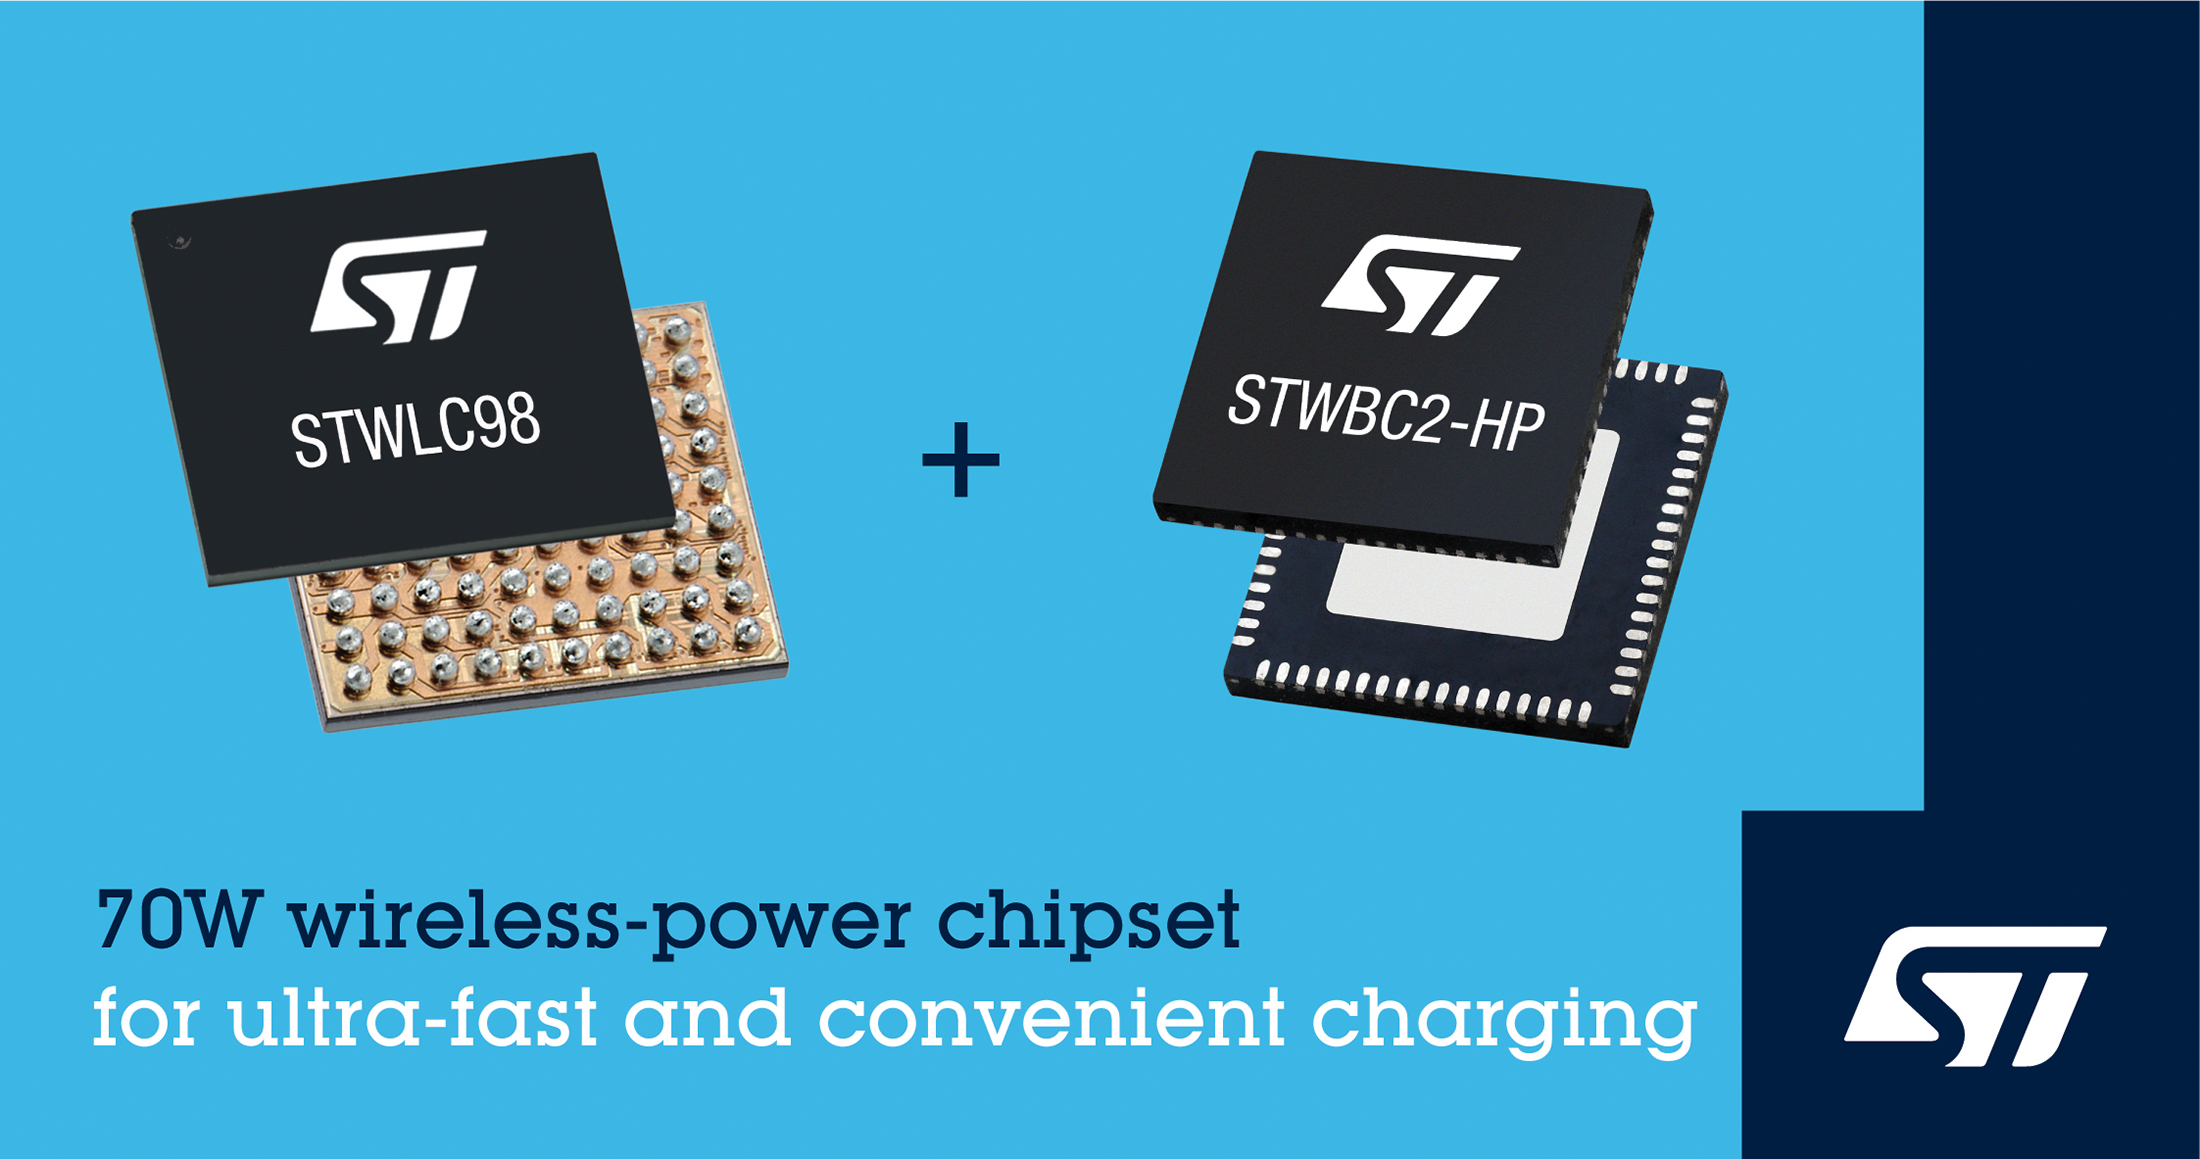 STMicroelectronics Introduces 70 W Qi Compliant Chipsets for Ultrafast and Convenient Charging